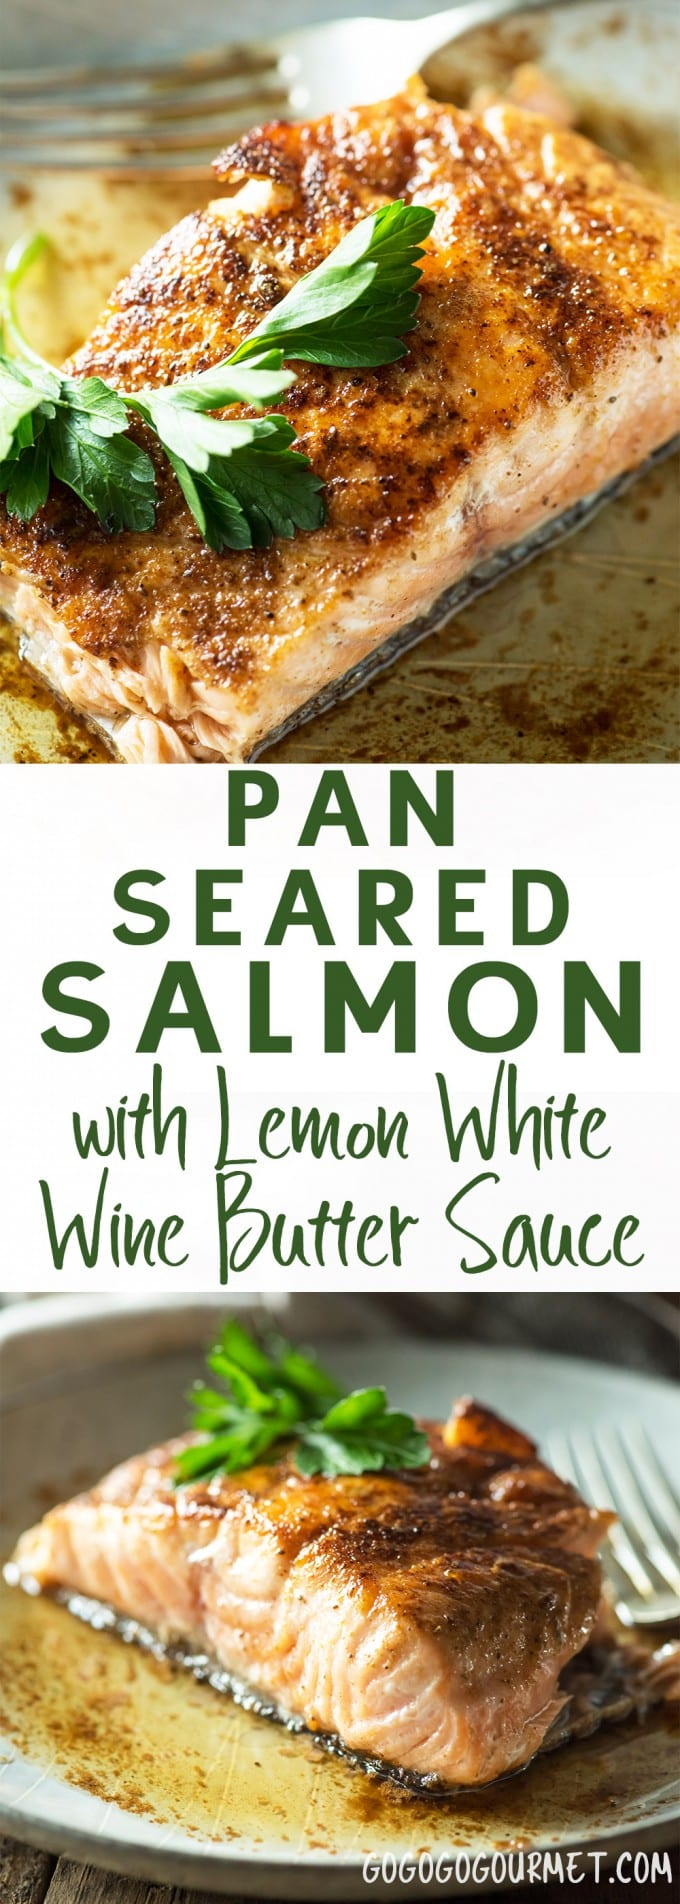 This Pan Seared Salmon with Lemon White Wine Butter Sauce is a fast and easy salmon recipe for busy weeknights.